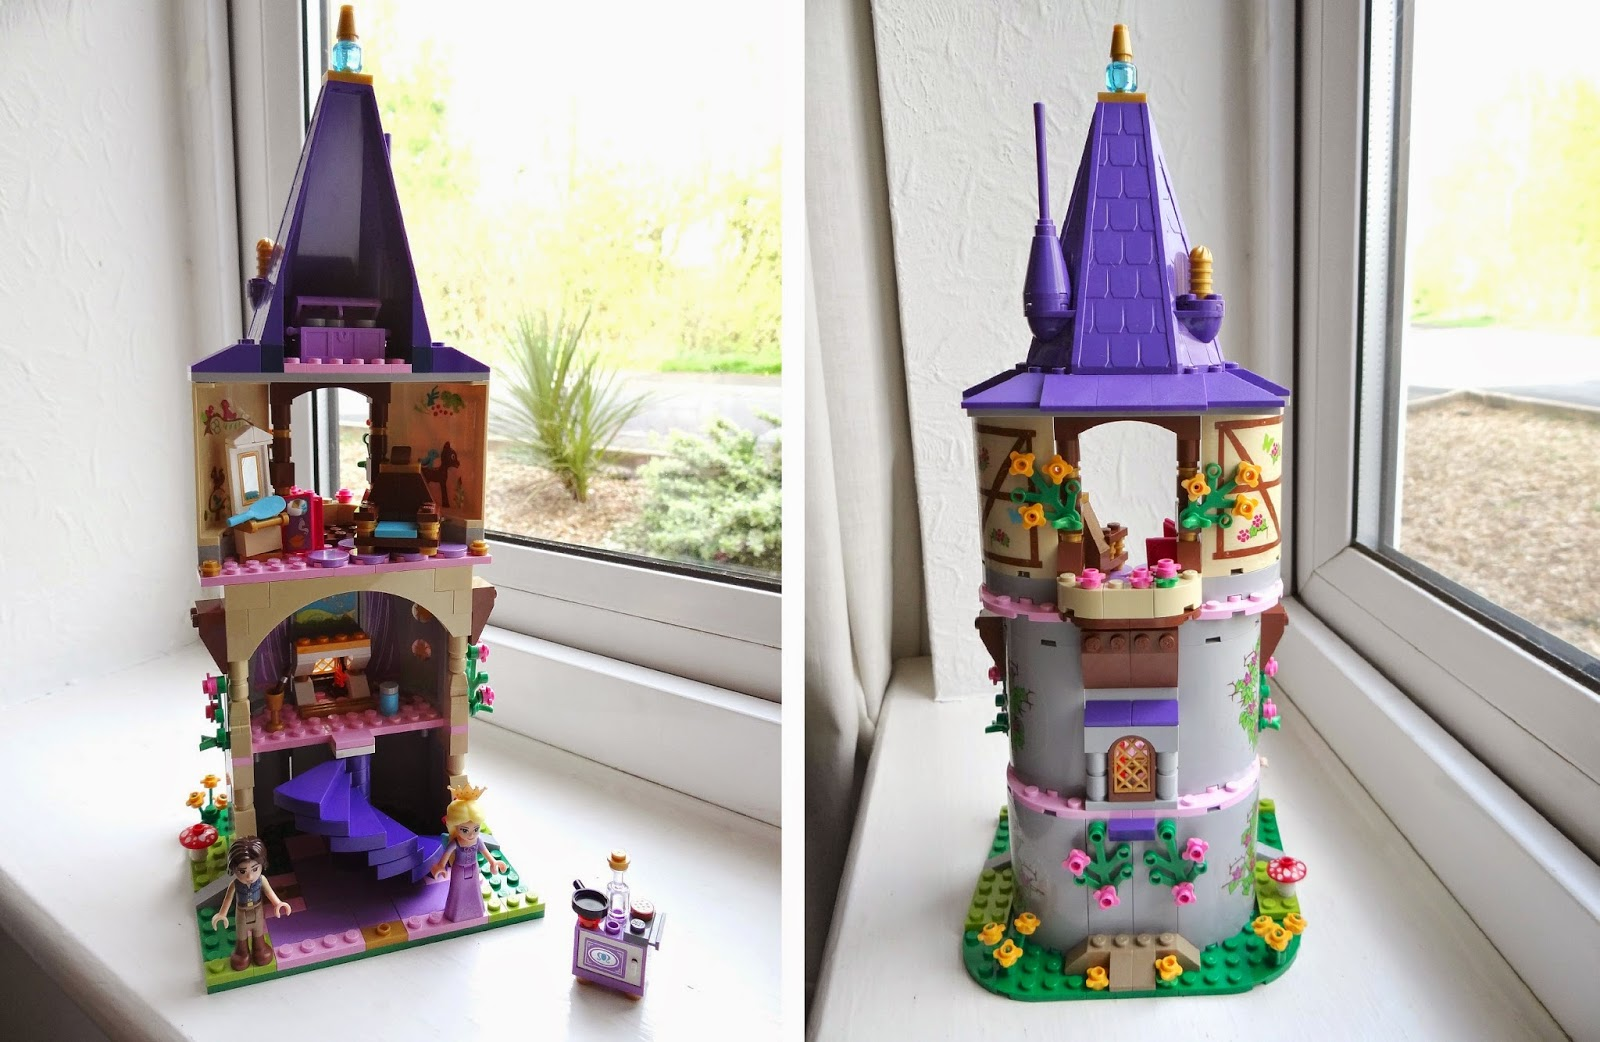 LEGO Disney Princesses, LEGO Tangled, LEGO Disney Princesses Rapunzel's Creativity Tower